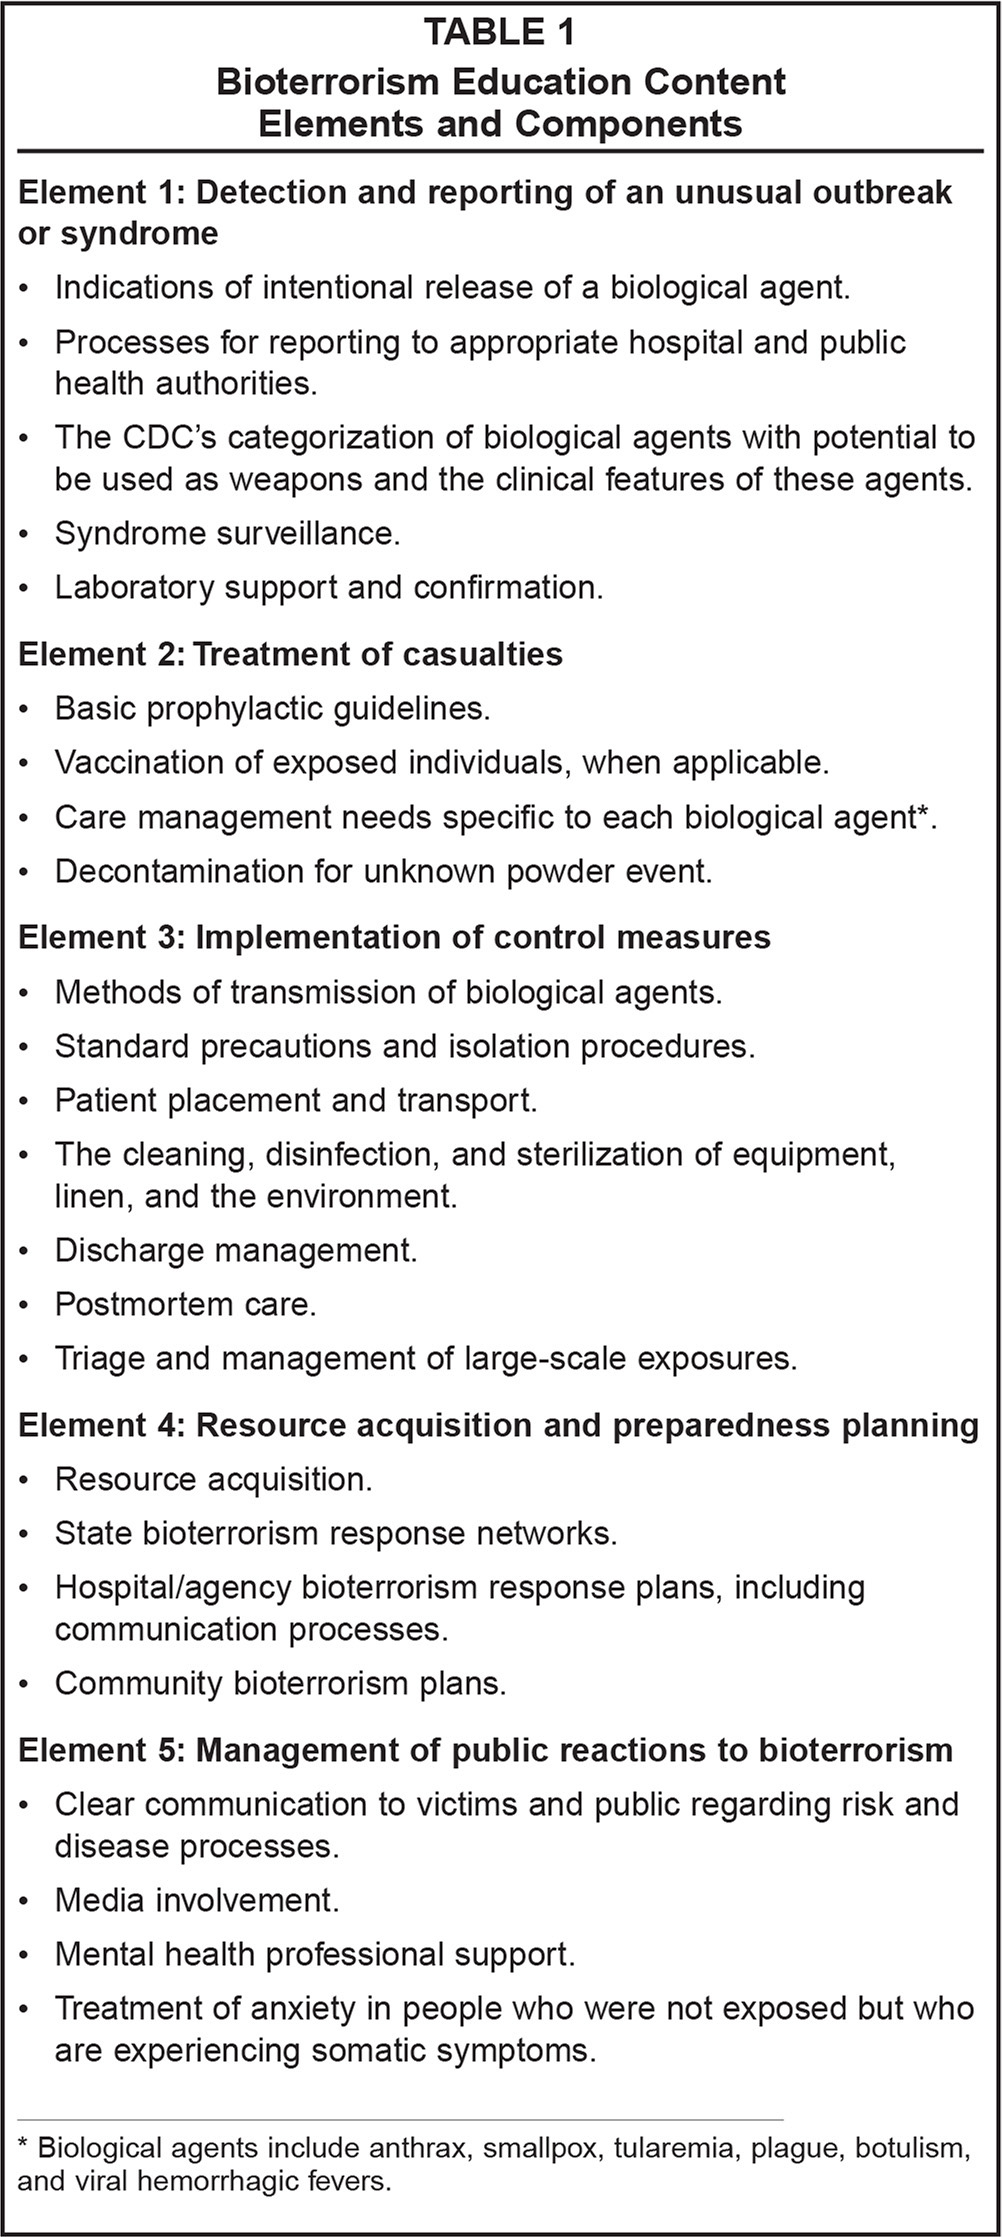 Bioterrorism Education Content Elements and Components